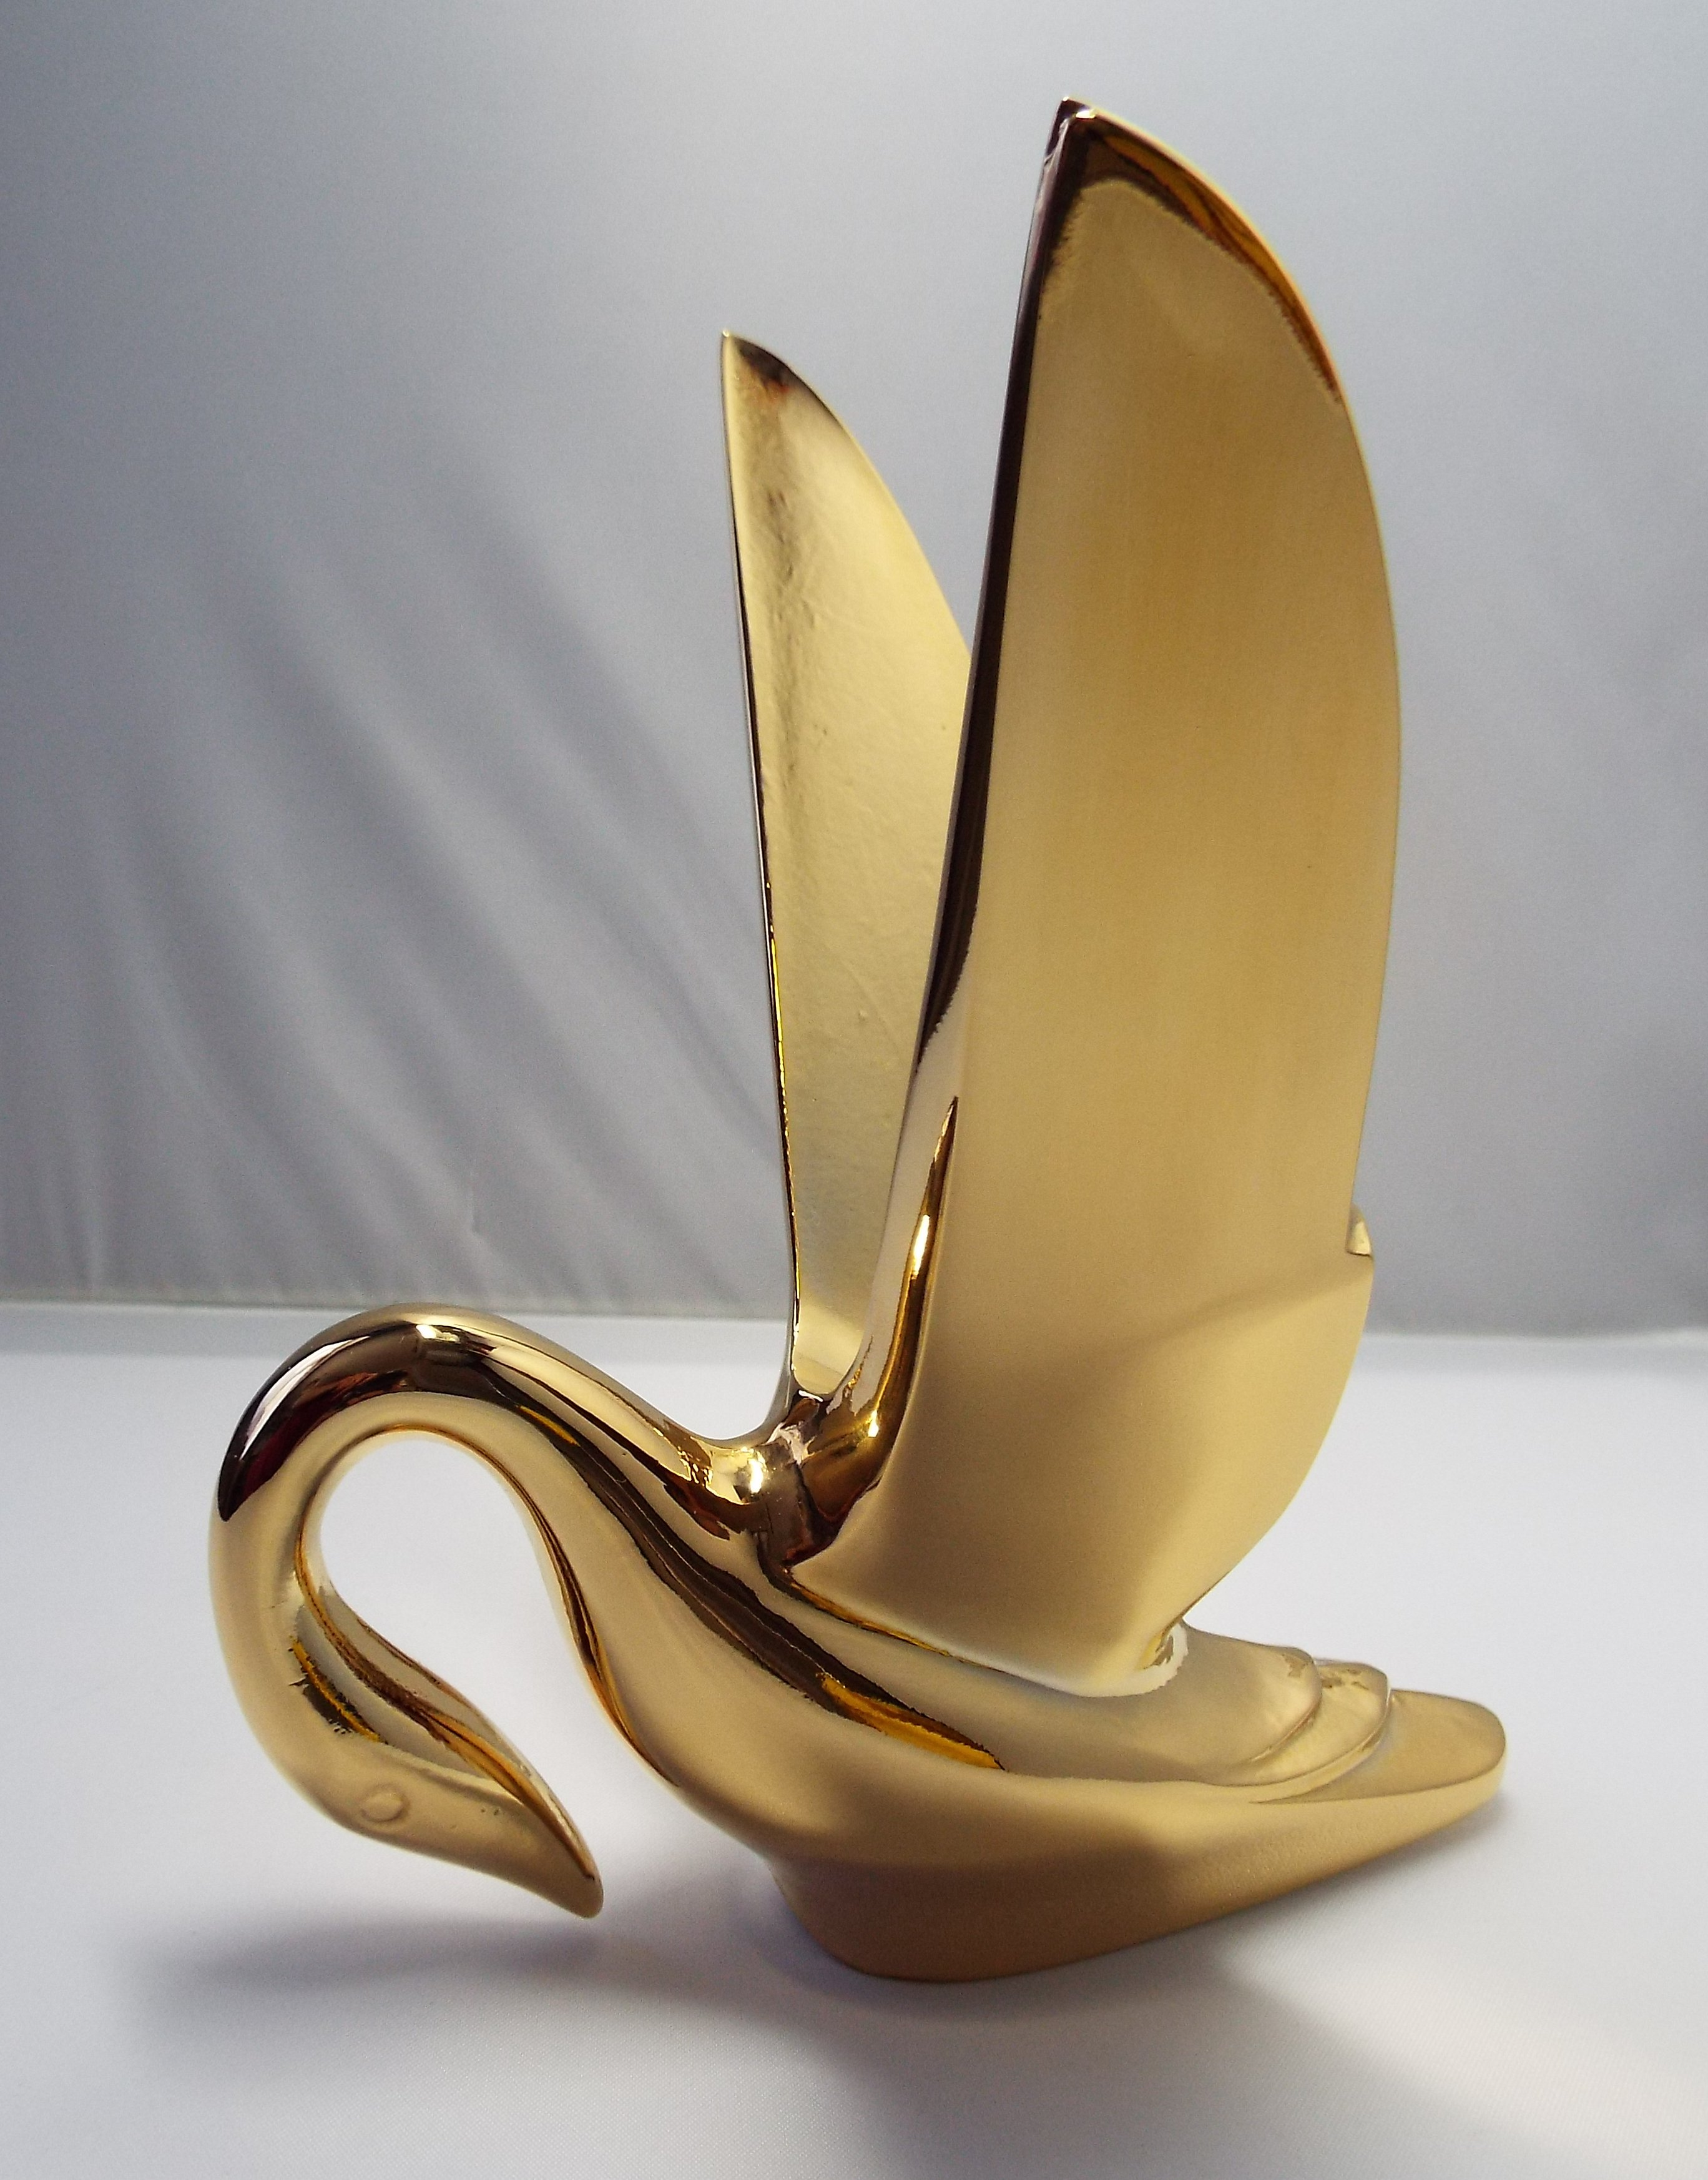 Swan Bonnet Mascot with Smooth Wings-Gold Plated